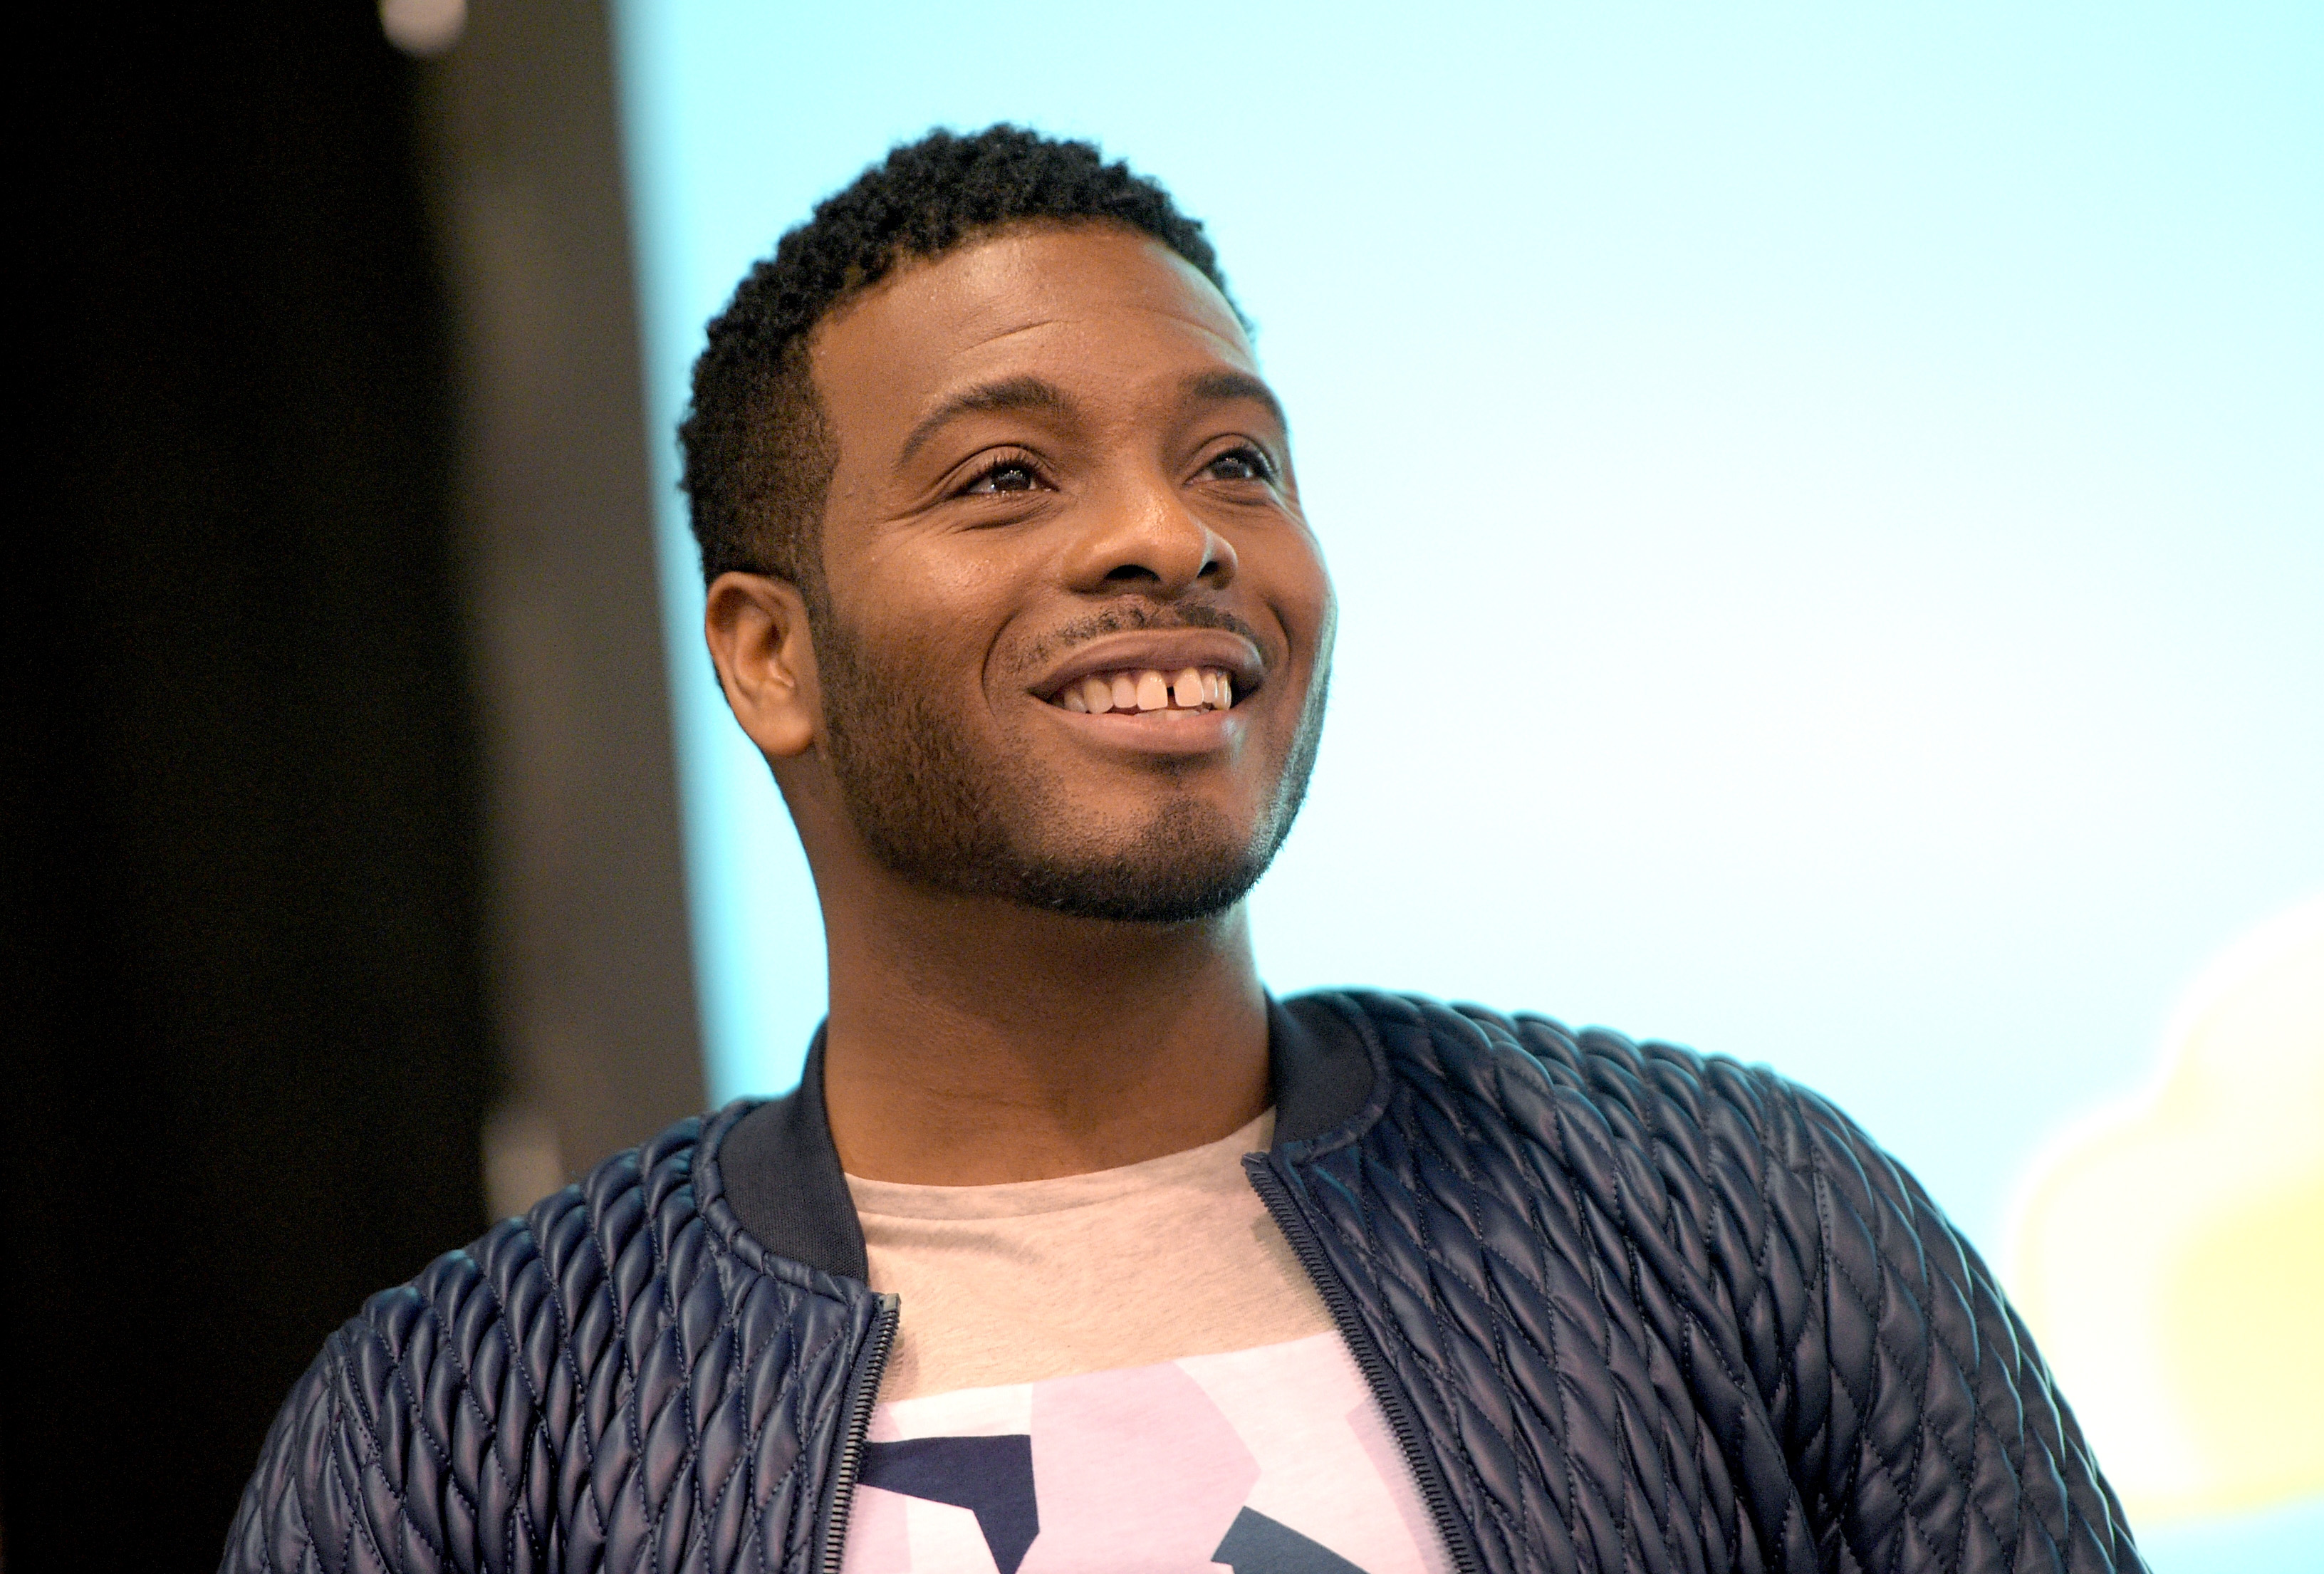 Actor Kel Mitchell, from the cast of Nickelodeon''s Game Shakers, speaks onstage at VidCon on July 25, 2015 in Anaheim, California.